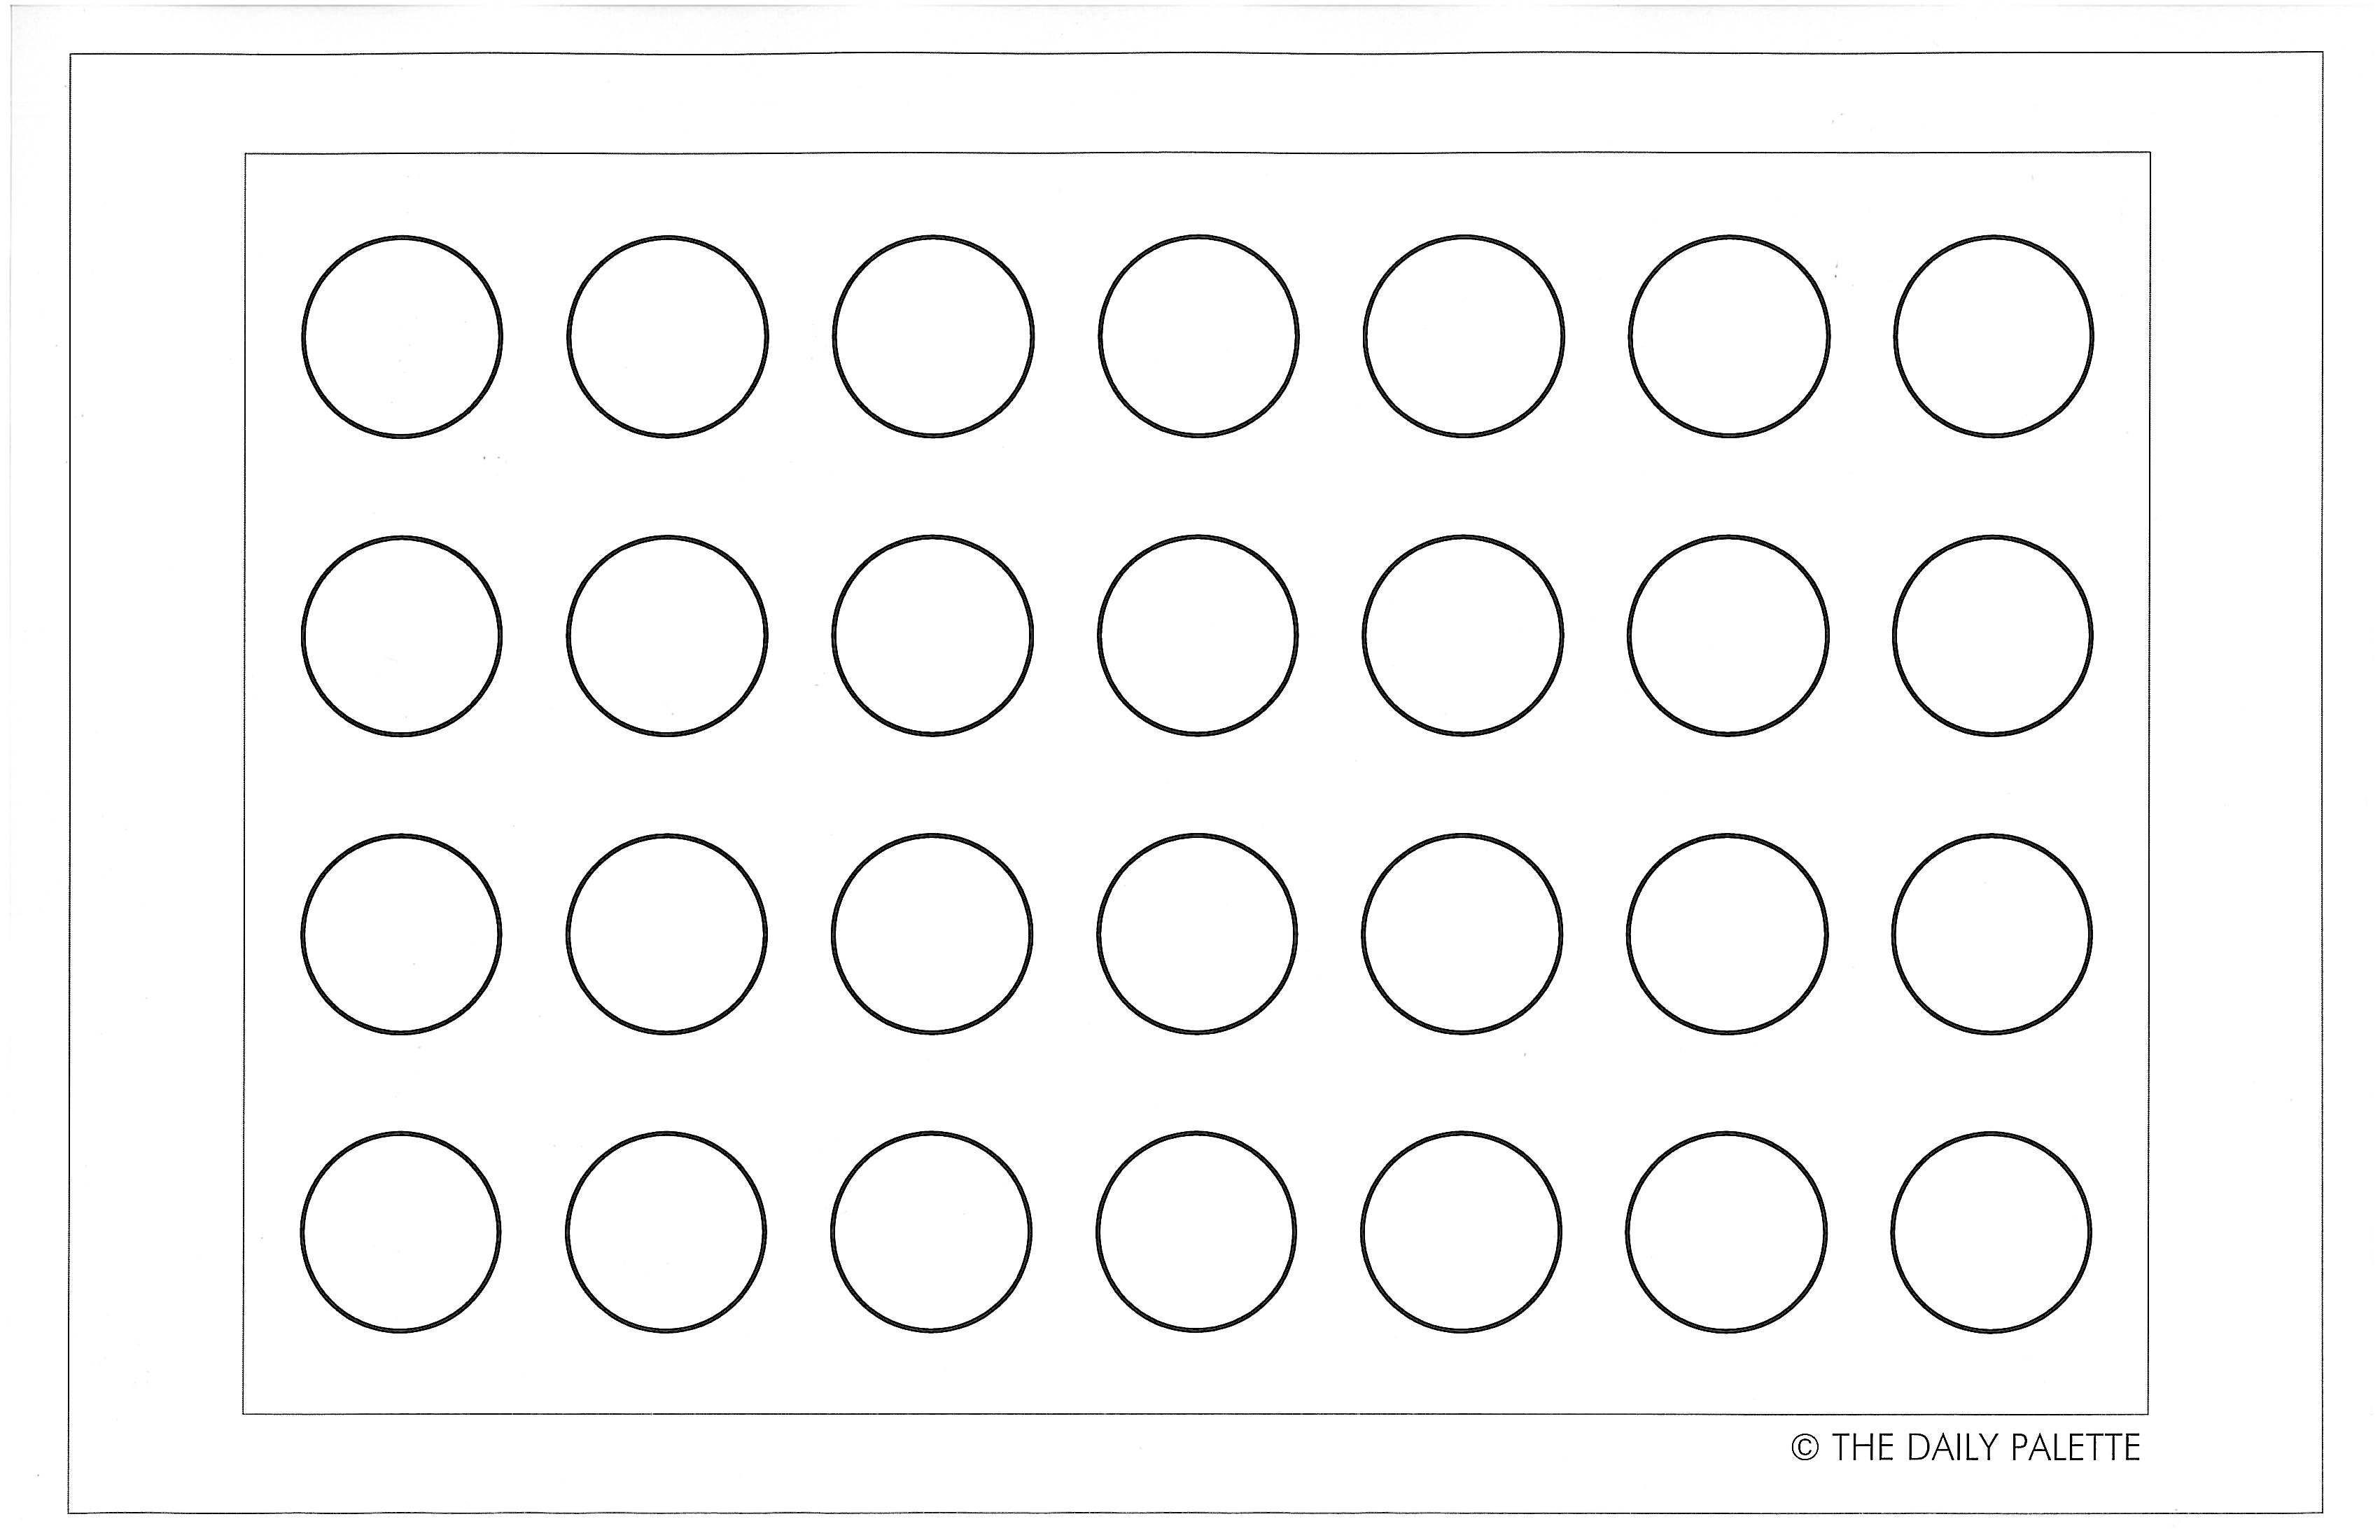 Macaron Templates To Print Off - Maybe I Can Toss My Tired Old - Free Printable Macaron Template